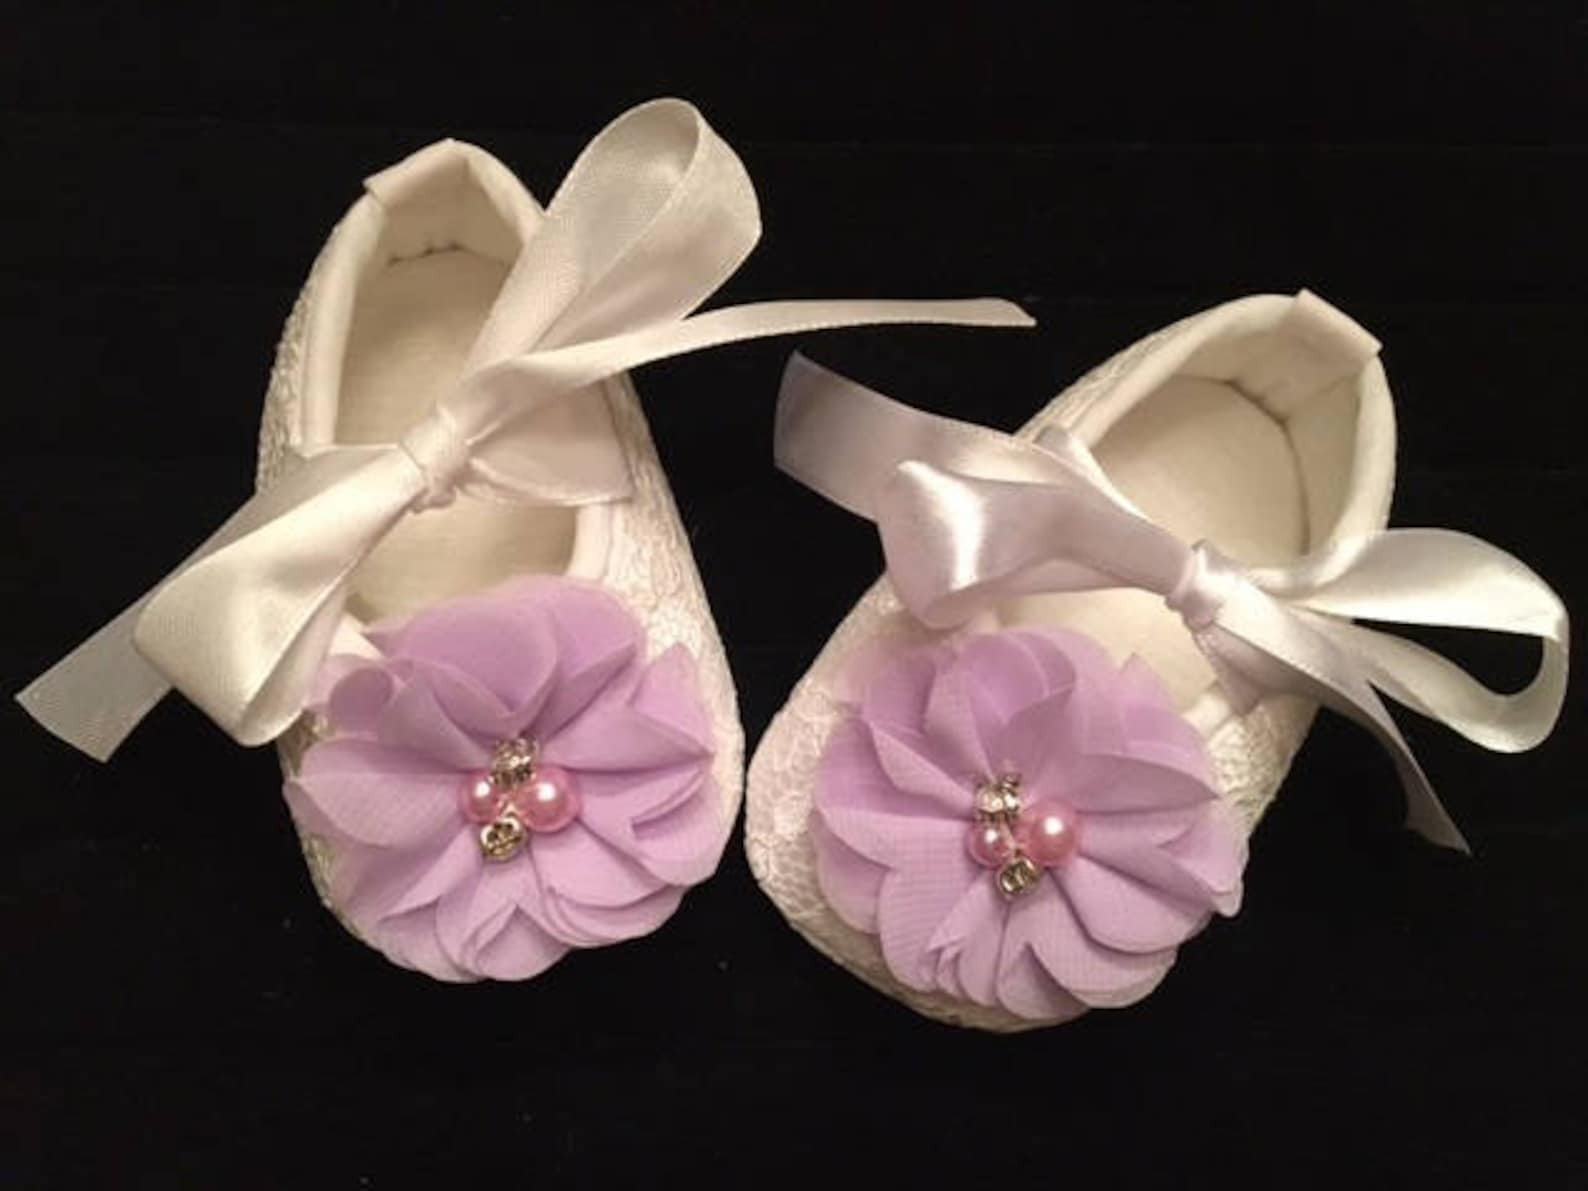 white lace baby shoes with lavender flower accent - lilac flower girl baby shoes - baby dress christmas shoes - baby ballet slip